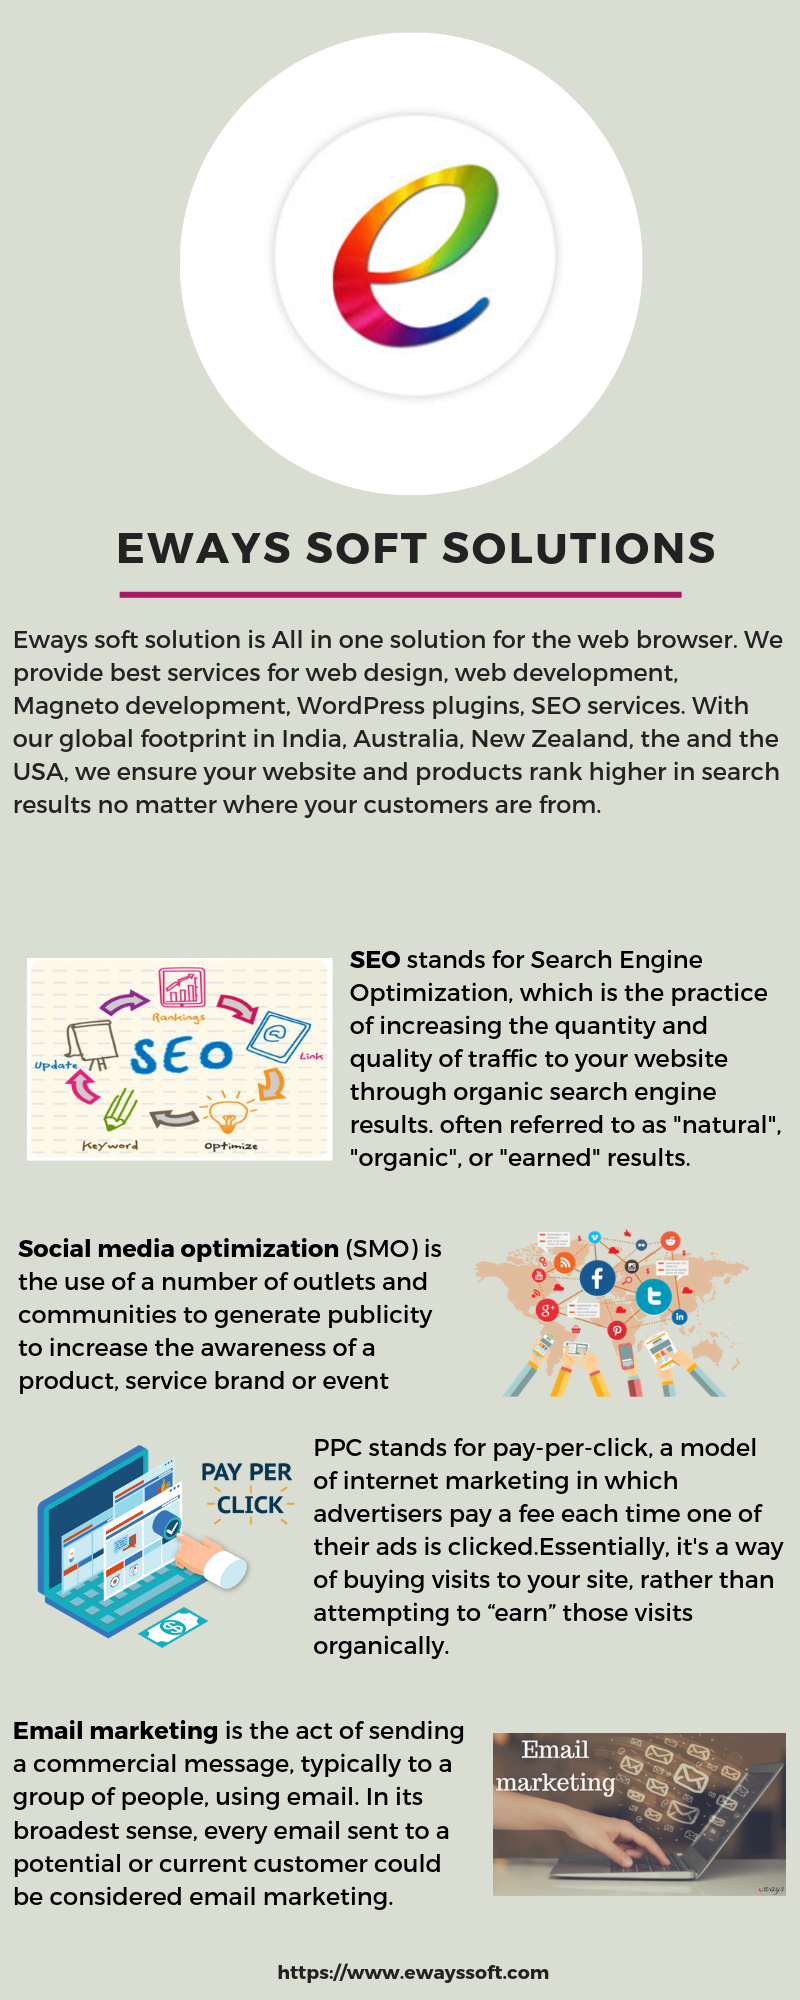 Eways Soft Solution Is All In One Solution For The Web Browser We Provide The Best Services For Web Design Web D Seo Services Best Seo Services Seo